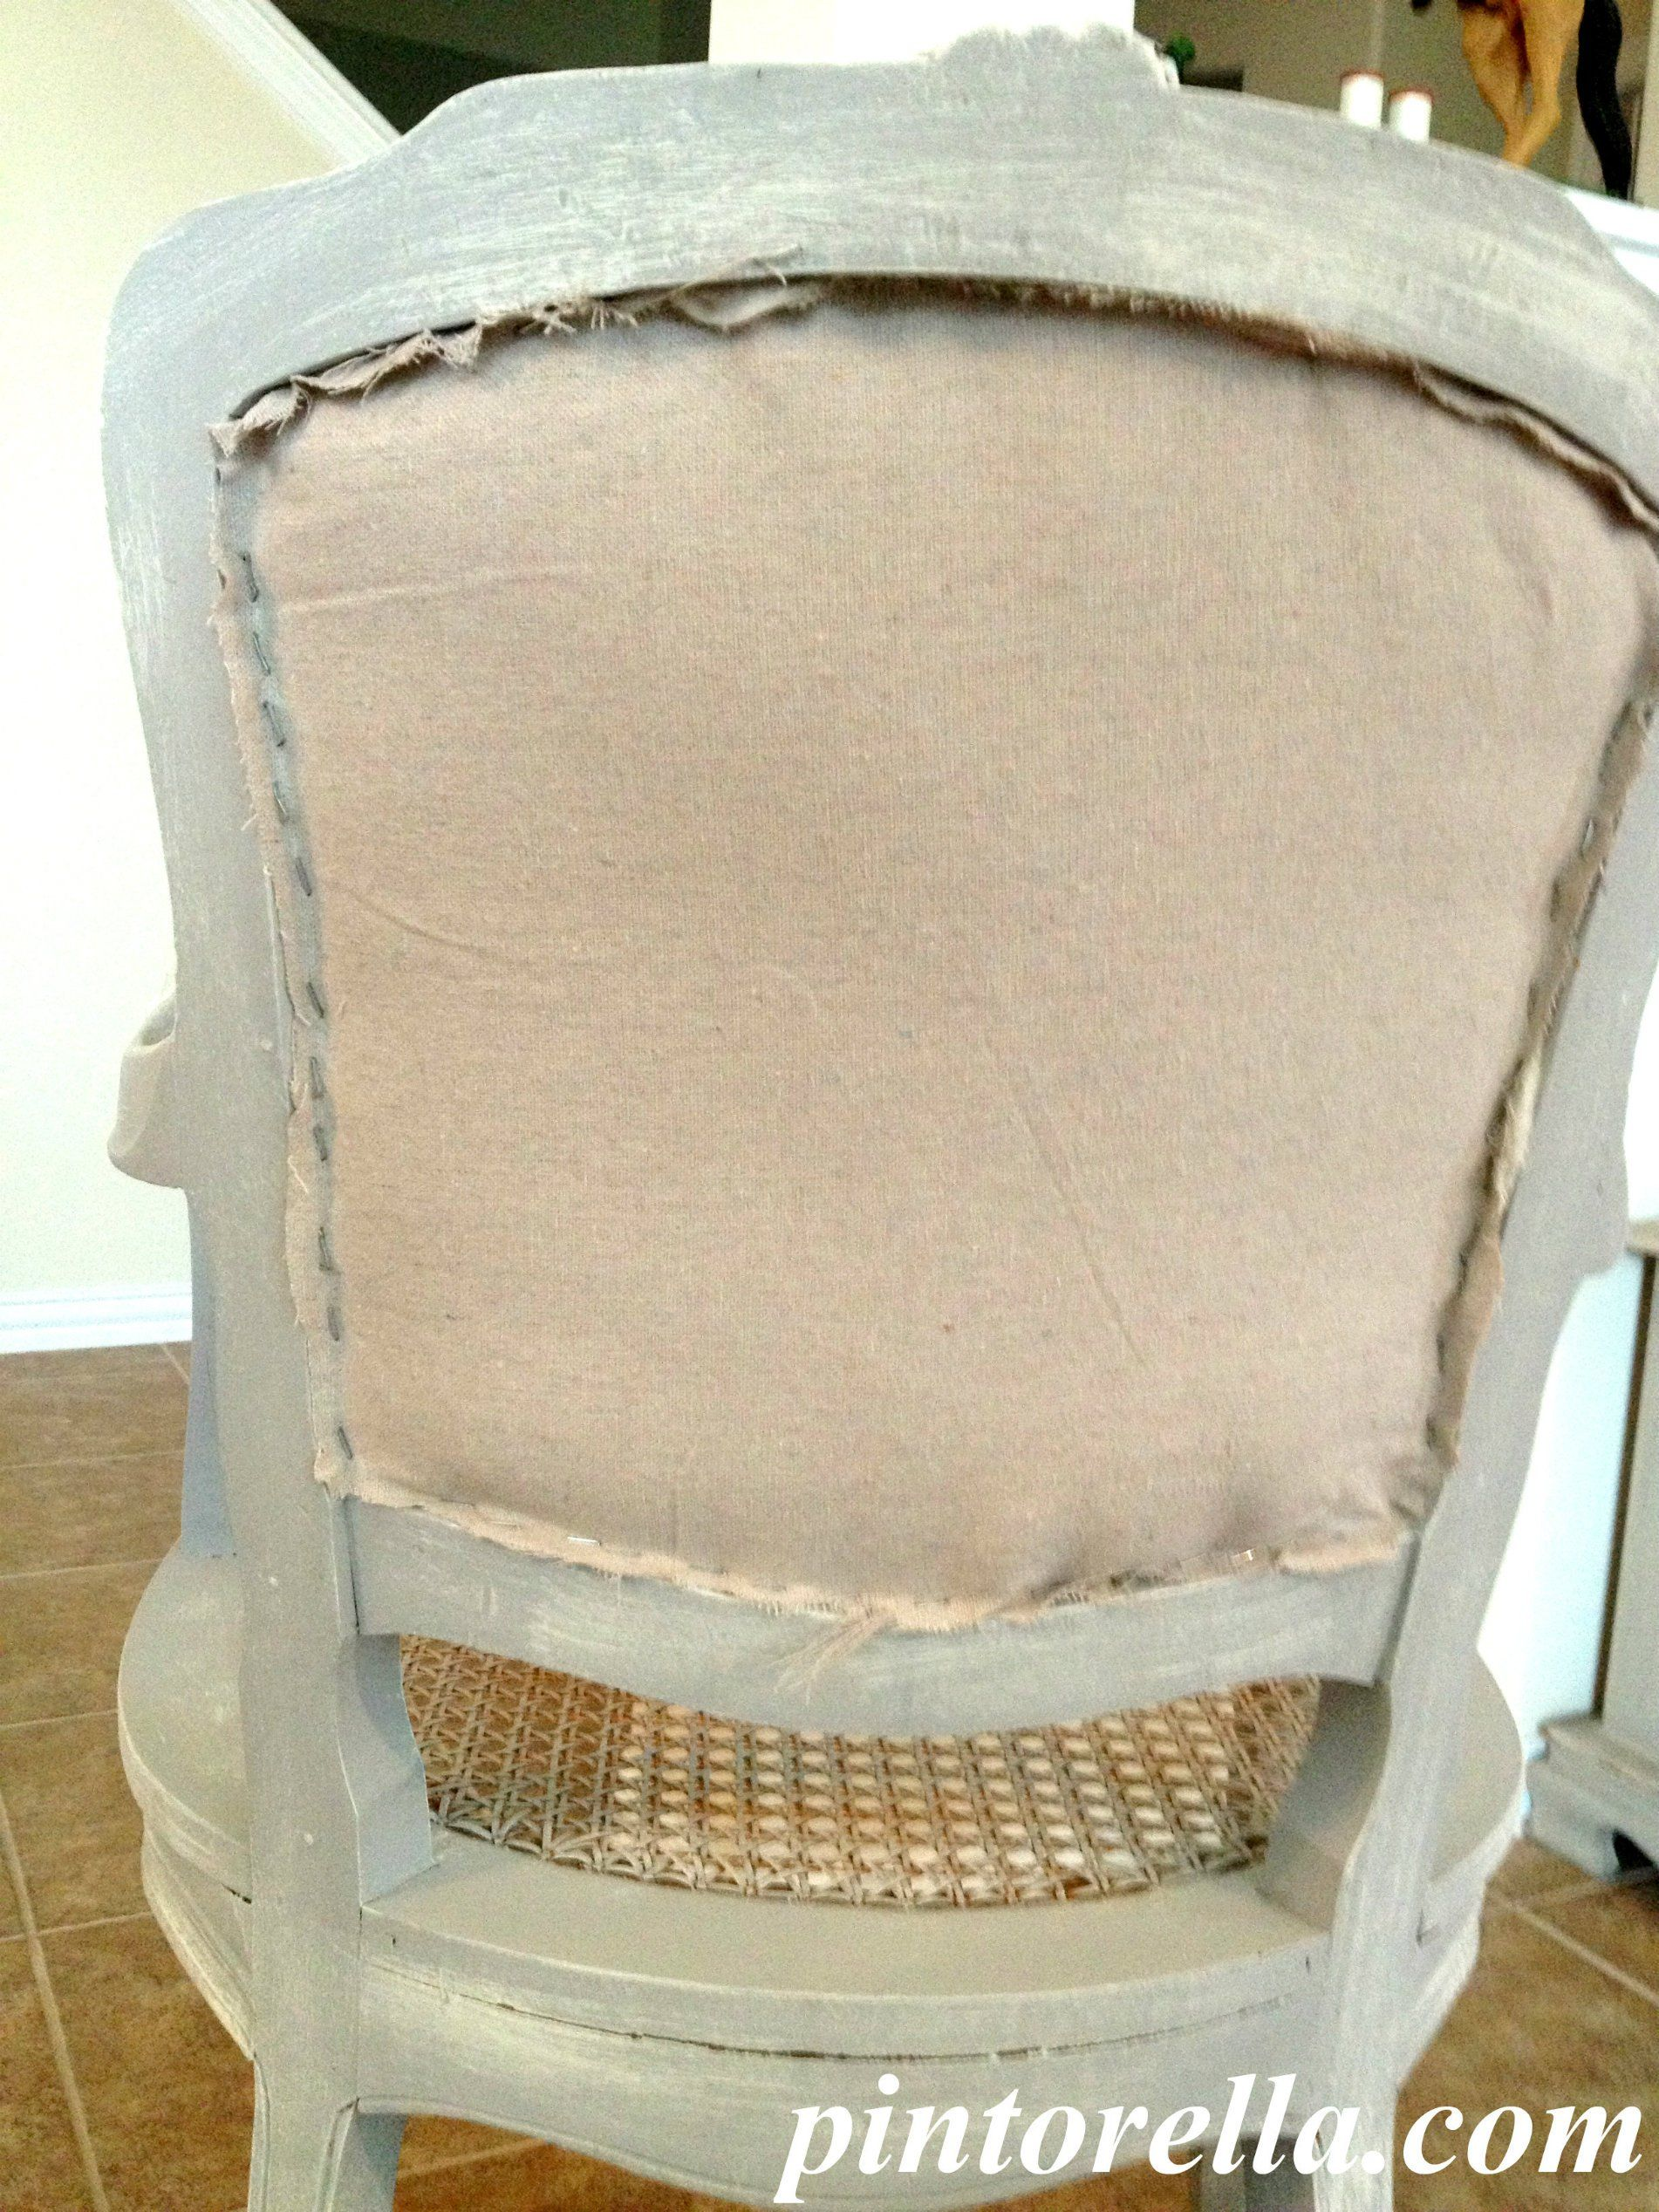 Chair Design Cane Chair Repair Kit Slipcovers Upholstery